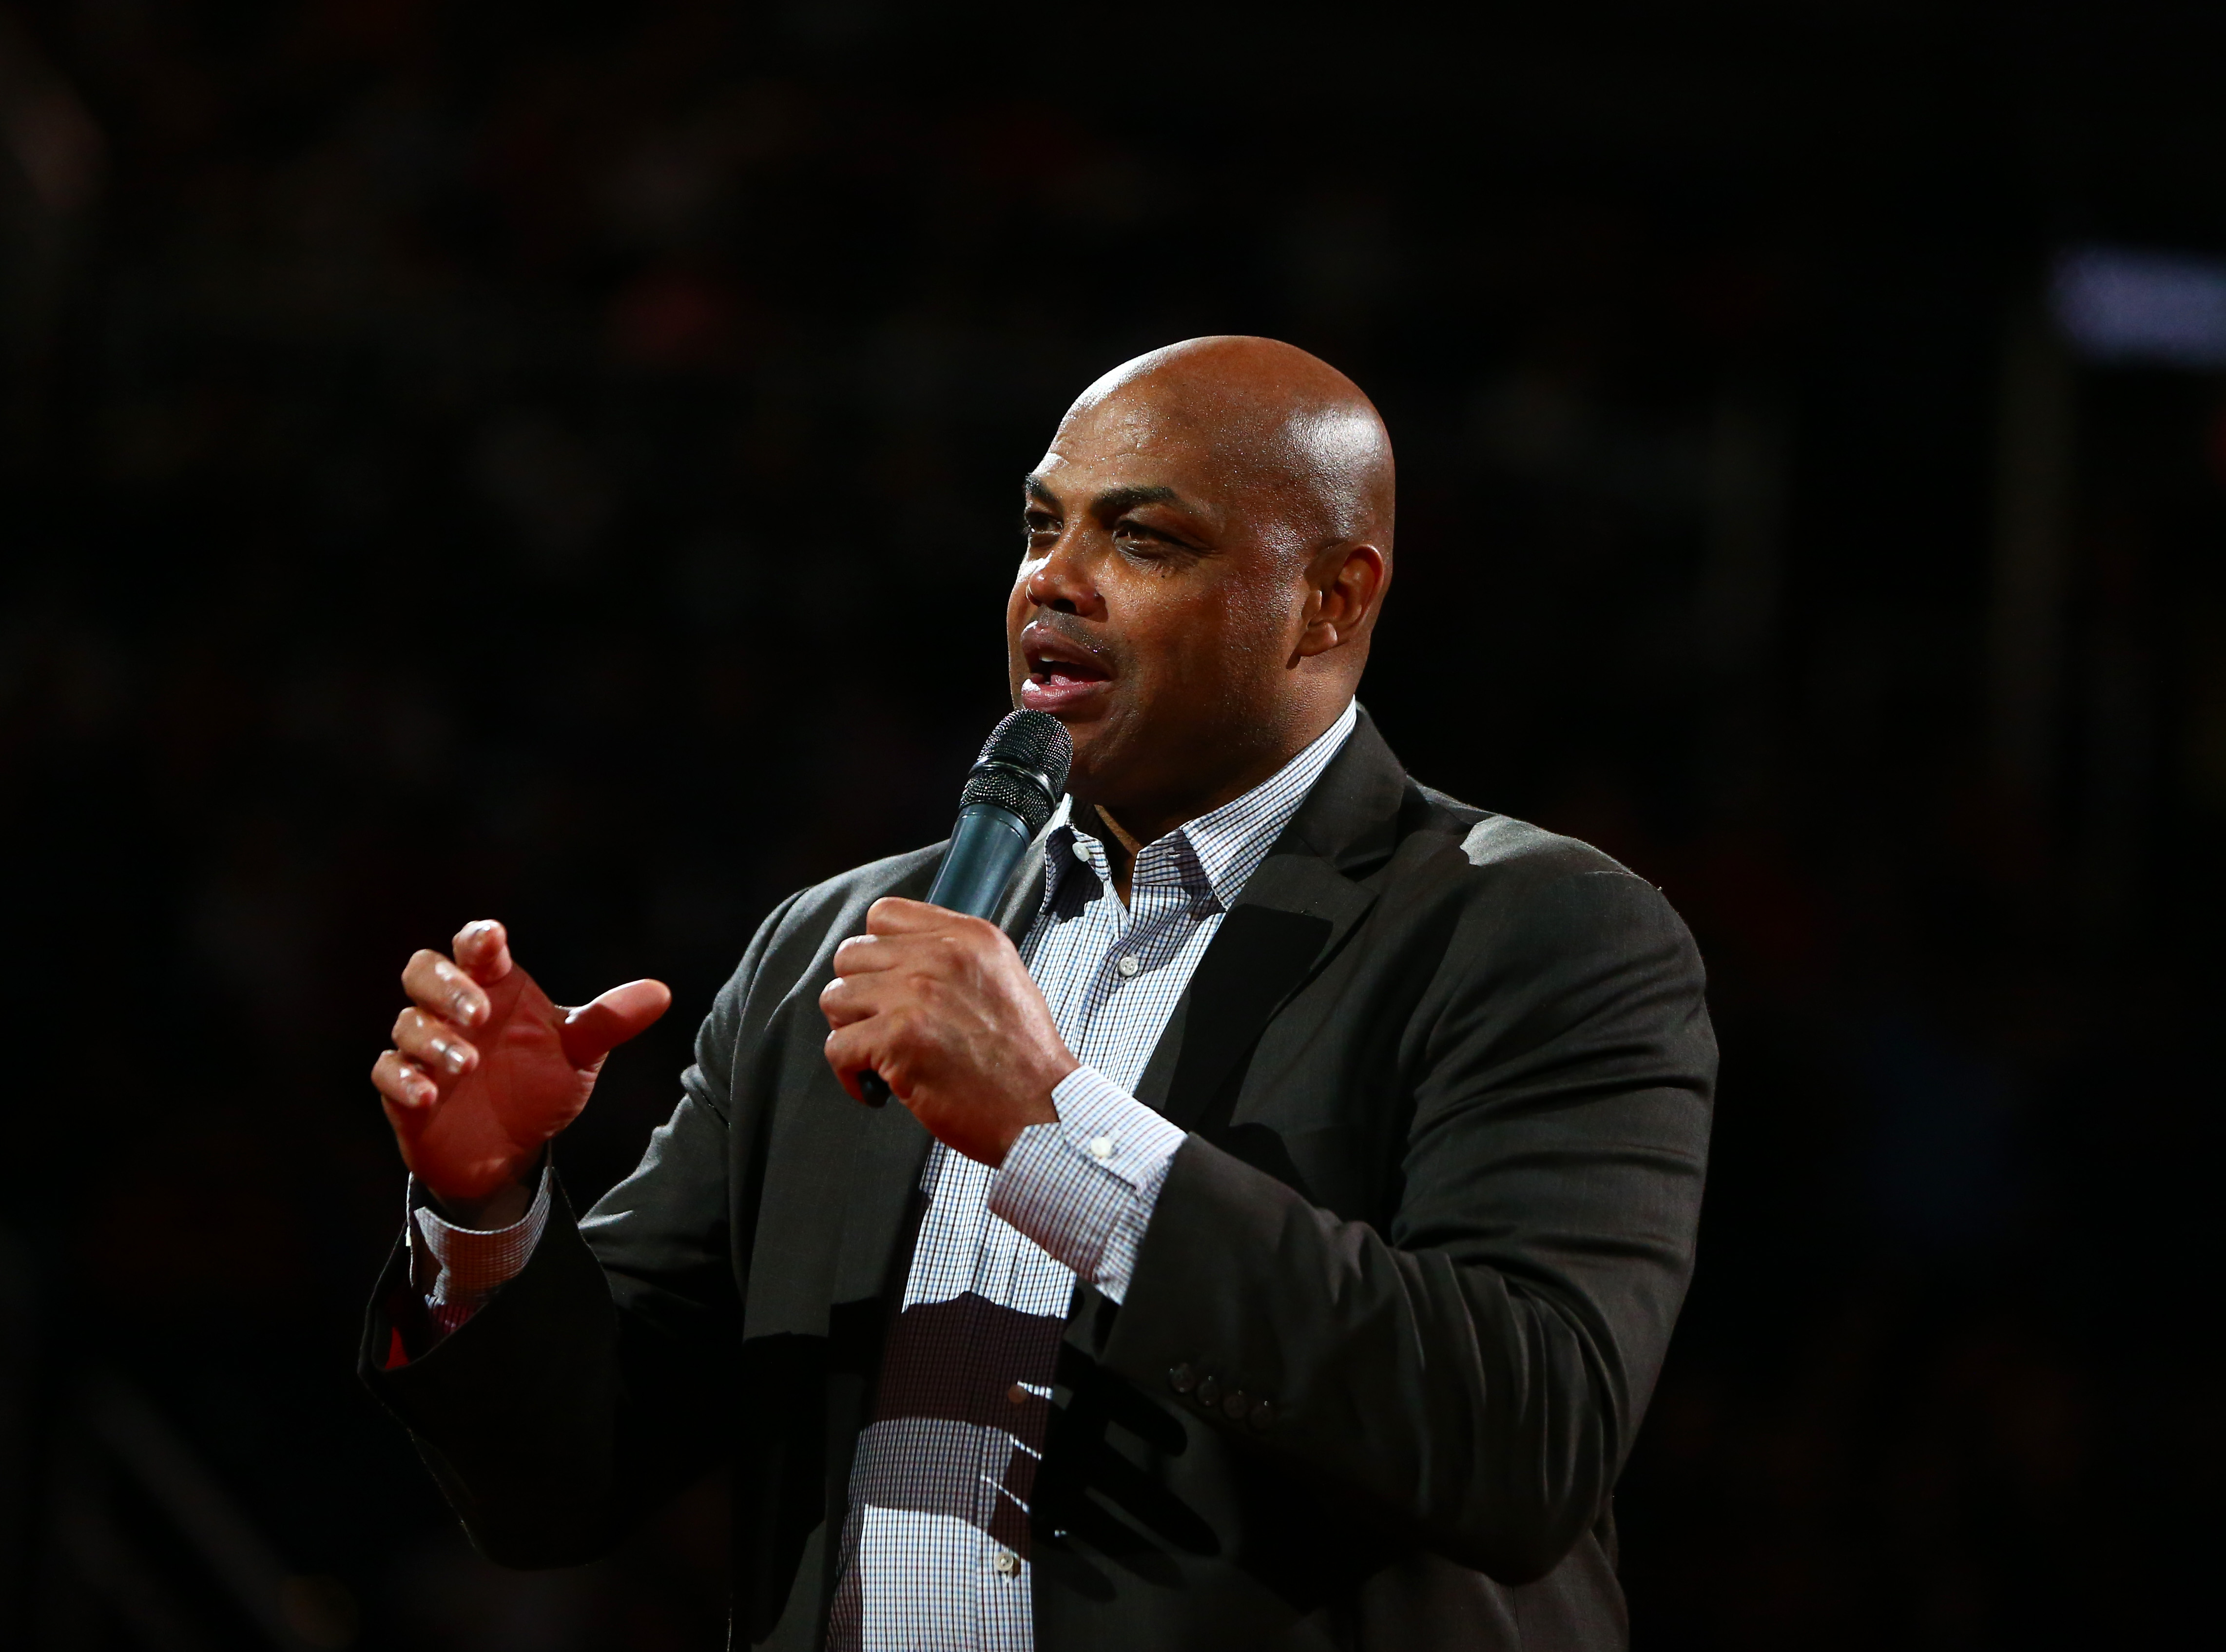 Charles Barkley claims Lakers 'are not even close' to contending